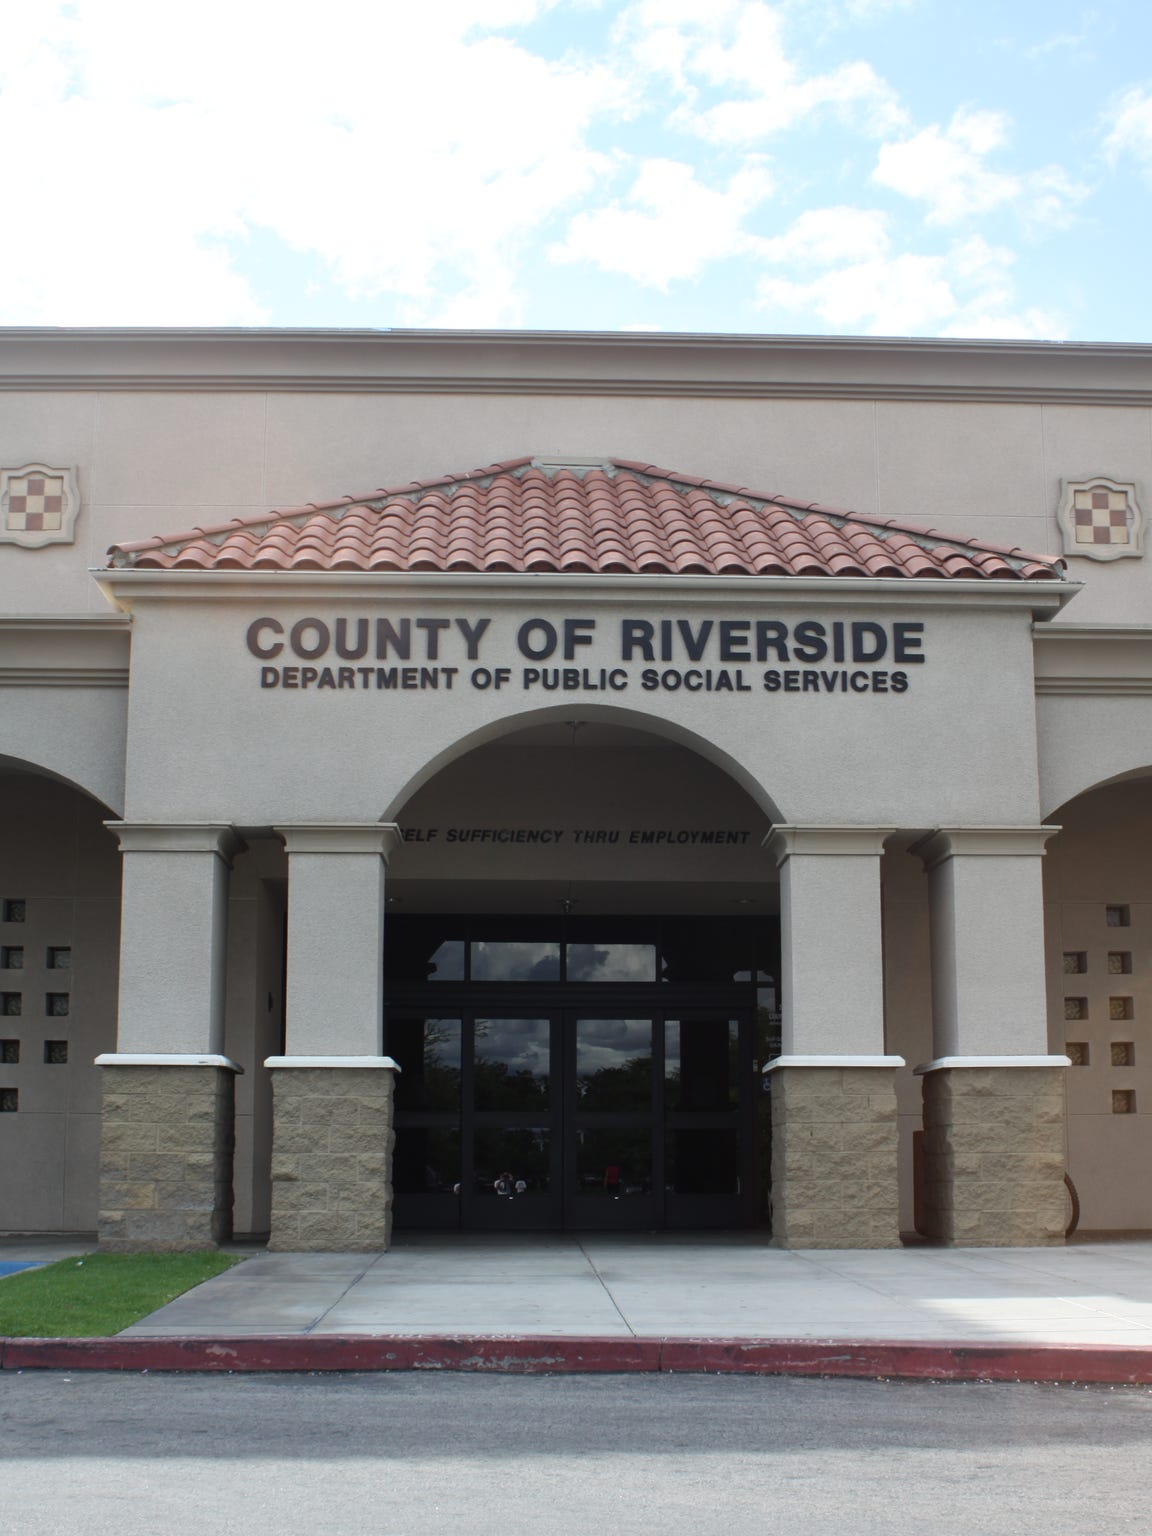 A Riverside County Department of Public Social Services